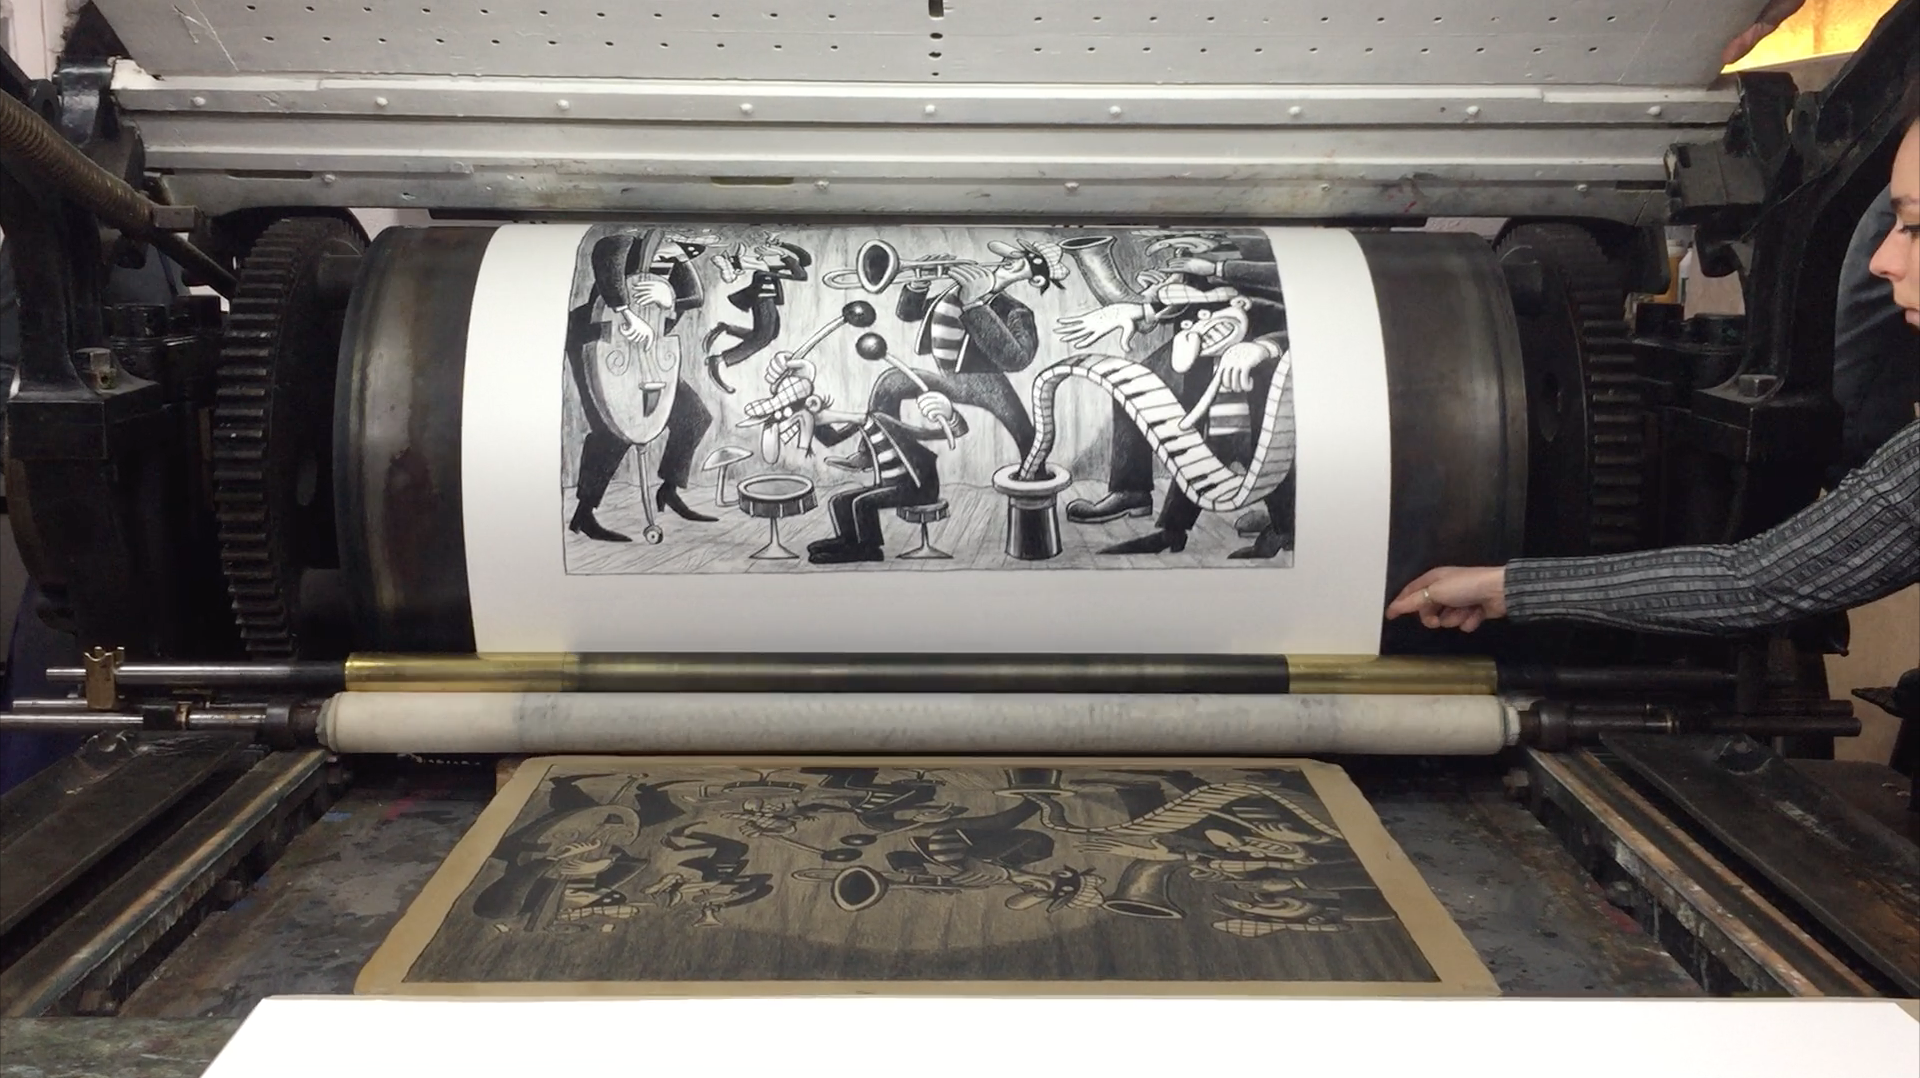 Video - Impression de la lithographie Silent Six de Art Spiegelman